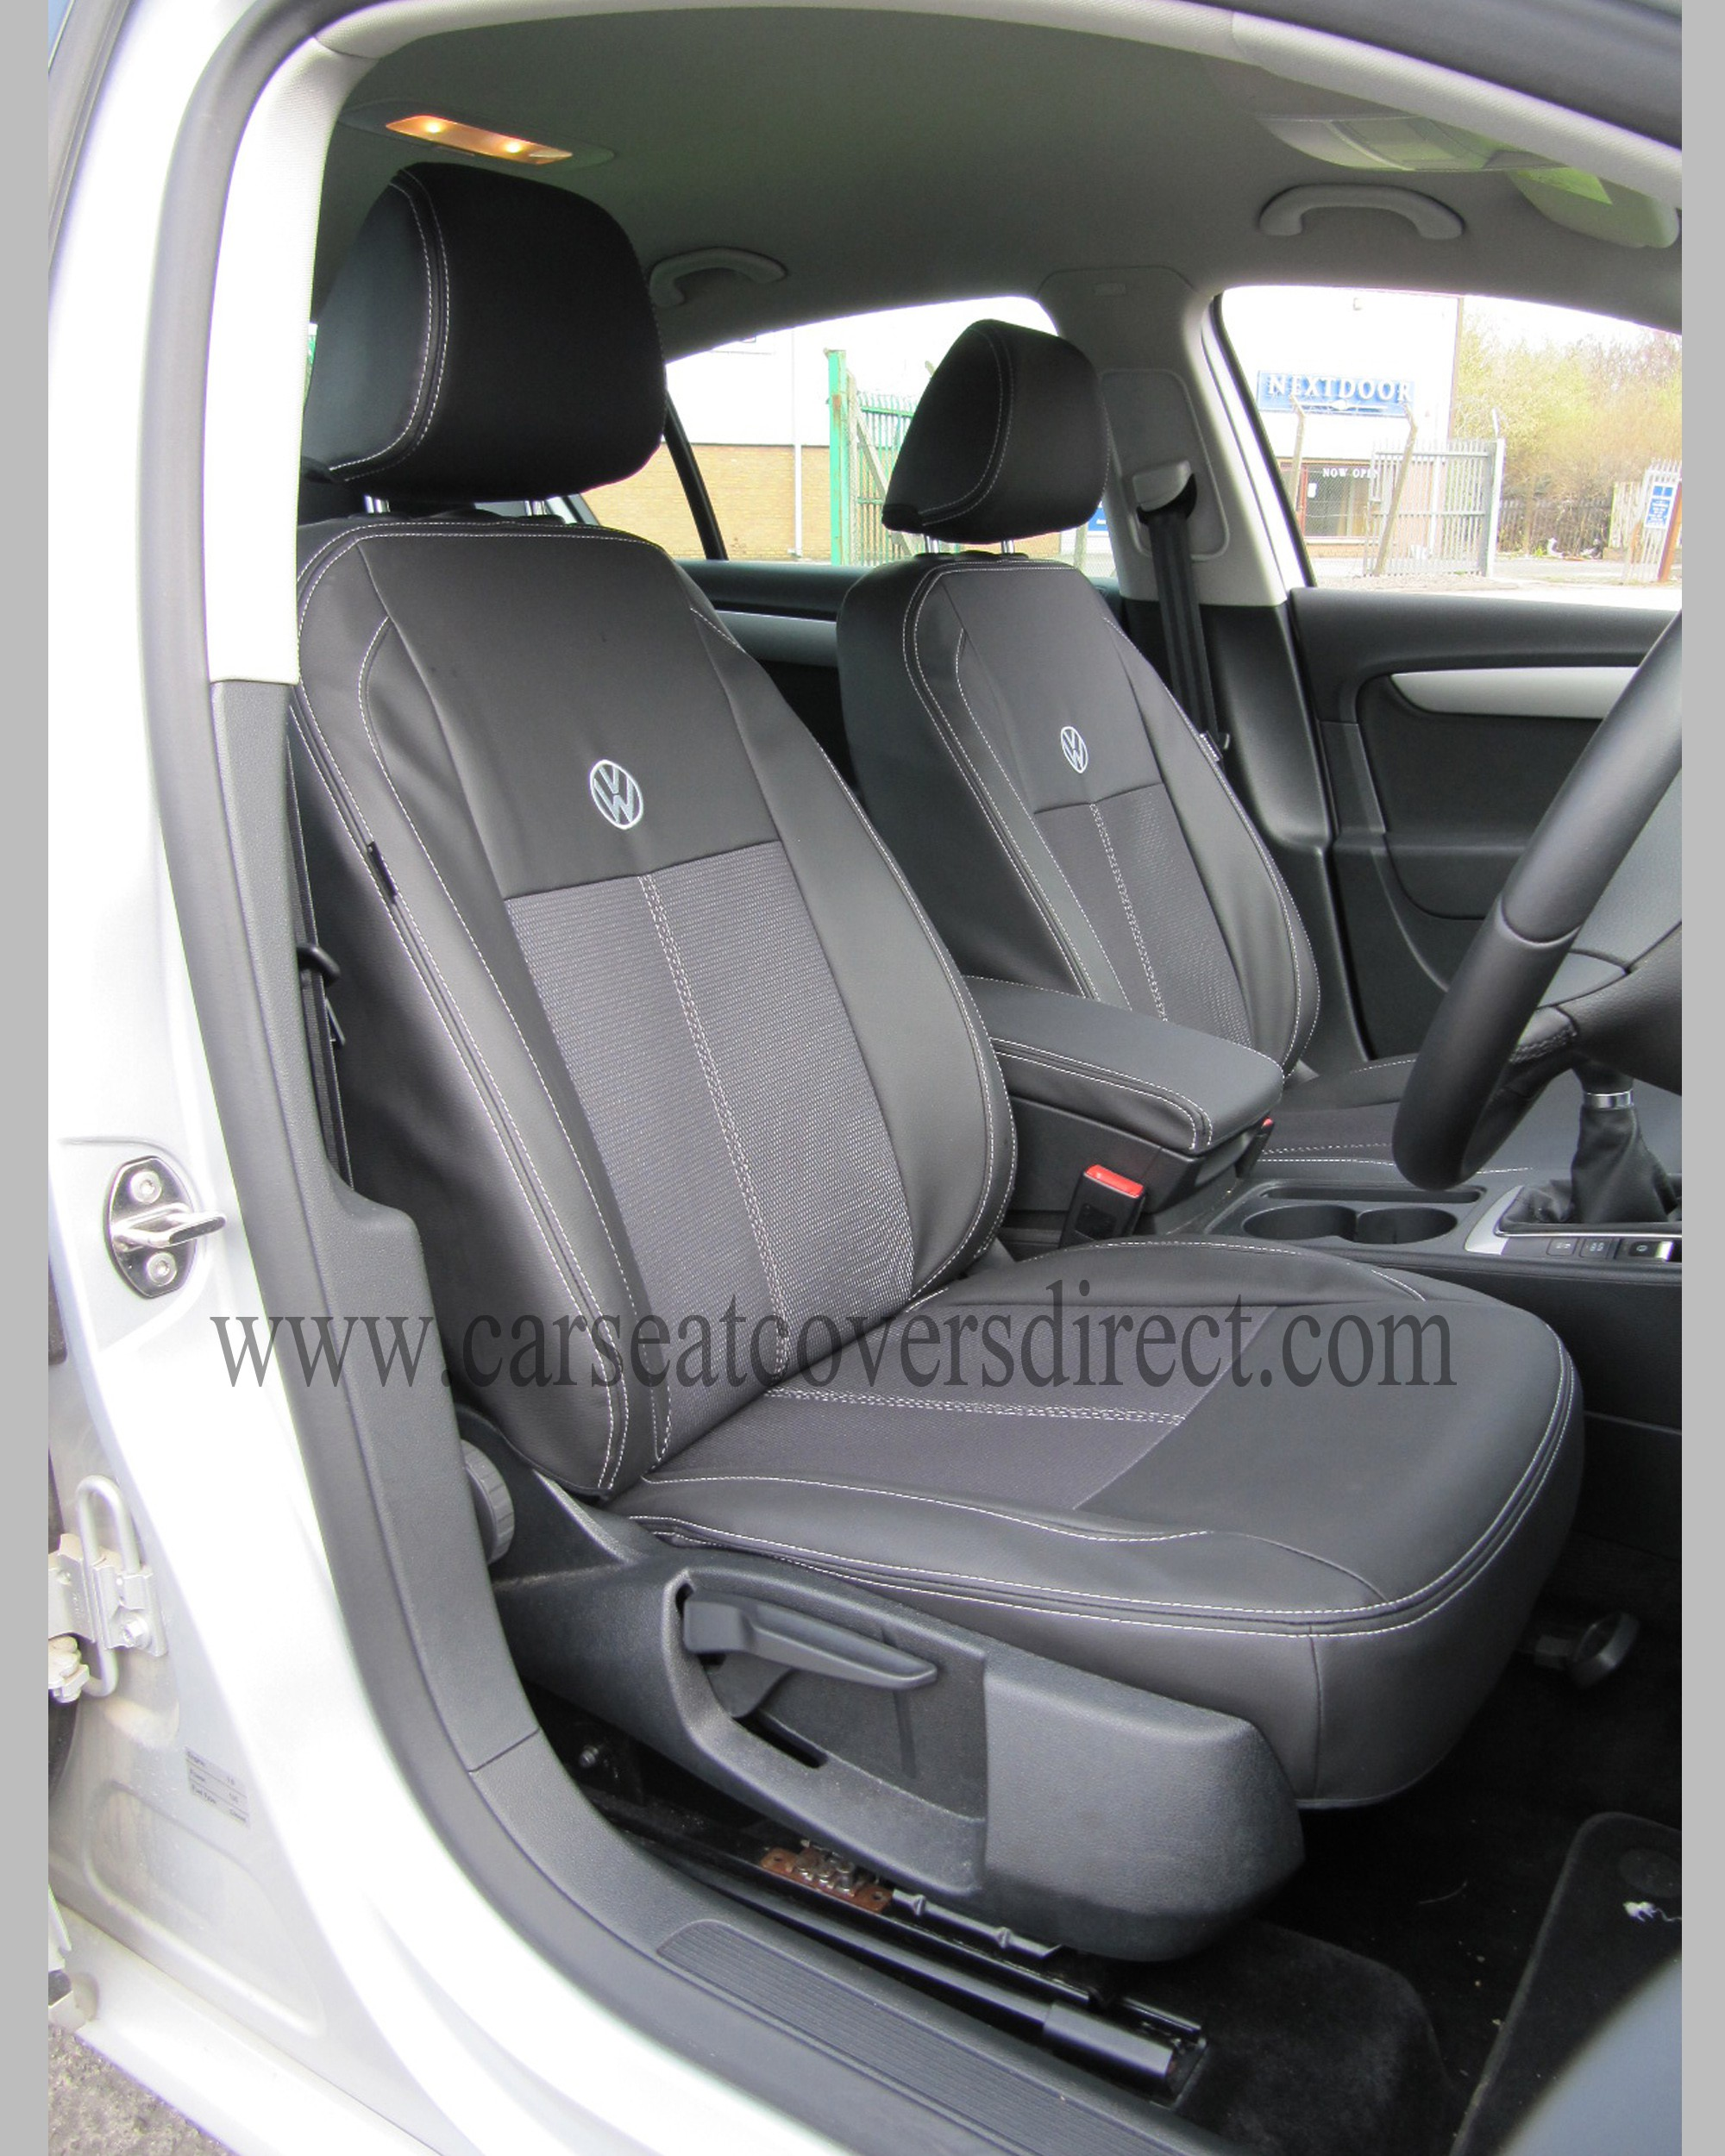 volkswagen vw passat b7 seat covers car seat covers direct tailored to your choice. Black Bedroom Furniture Sets. Home Design Ideas